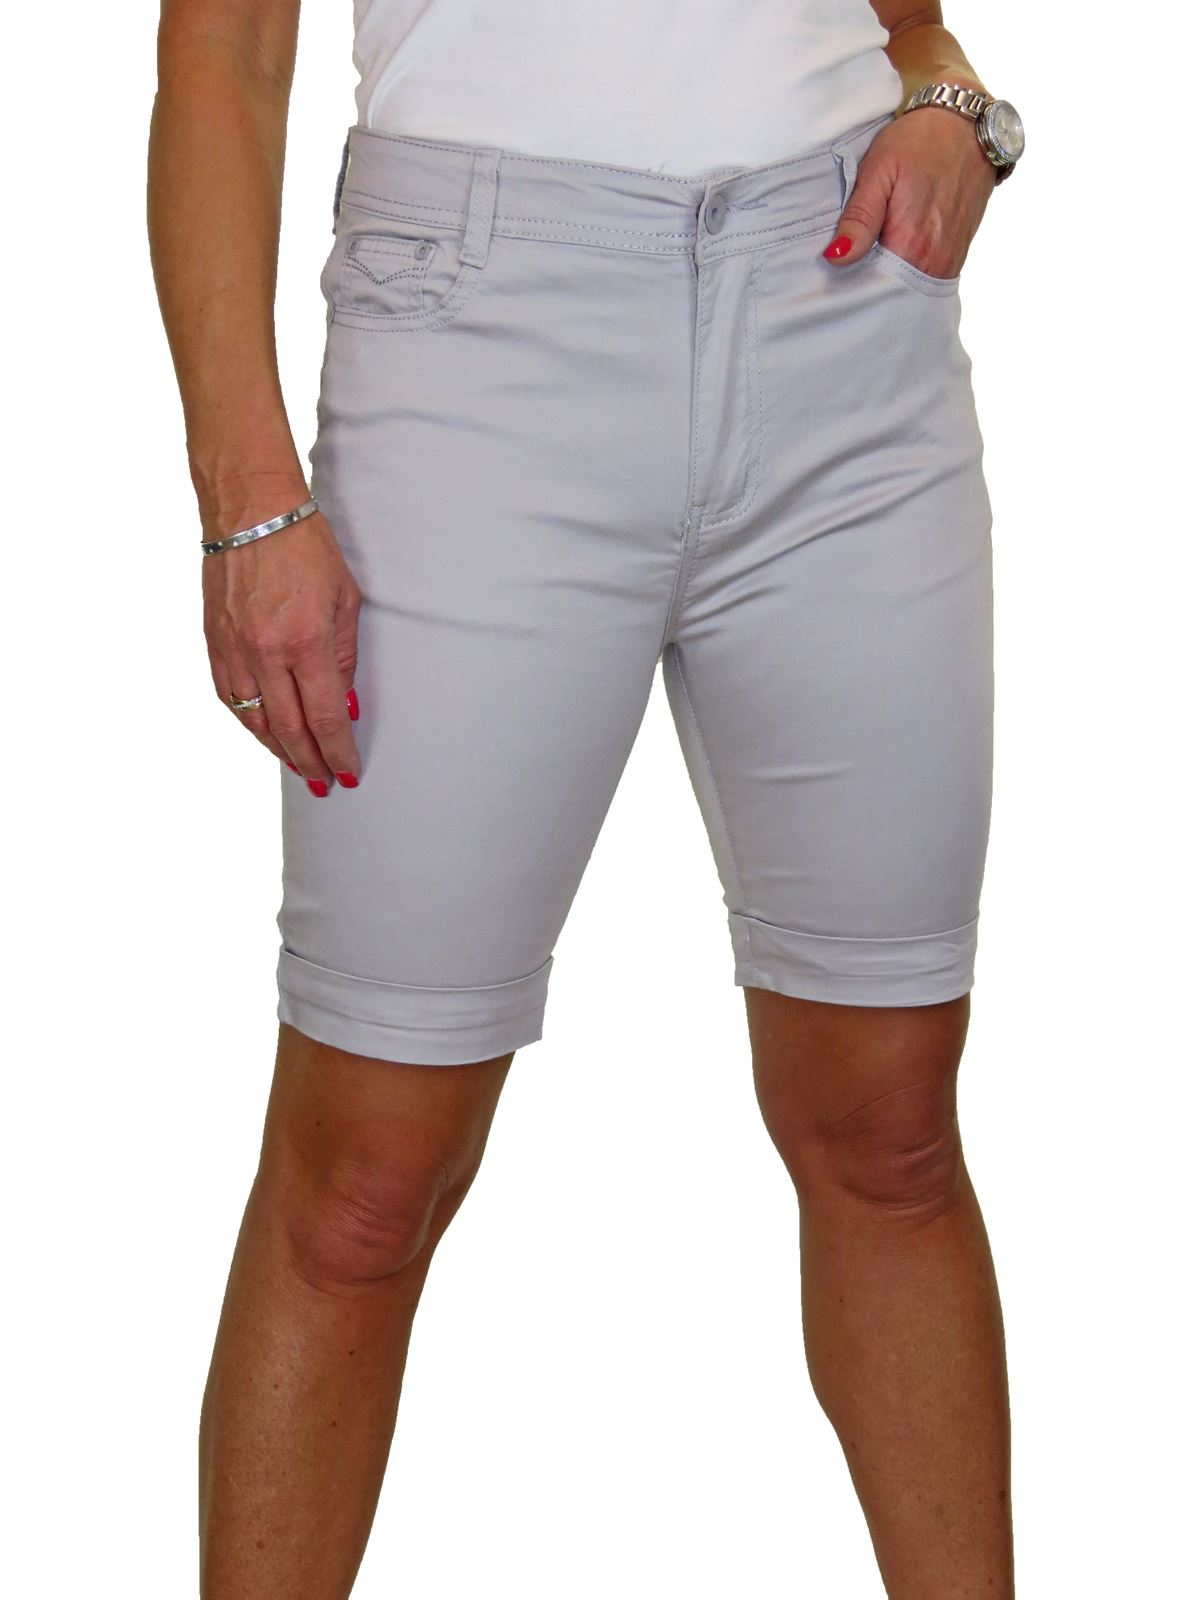 Ladies-Stretch-Stretch-Plus-Size-Jeans-Style-Shorts-Chino-Sheen-14-24 thumbnail 21